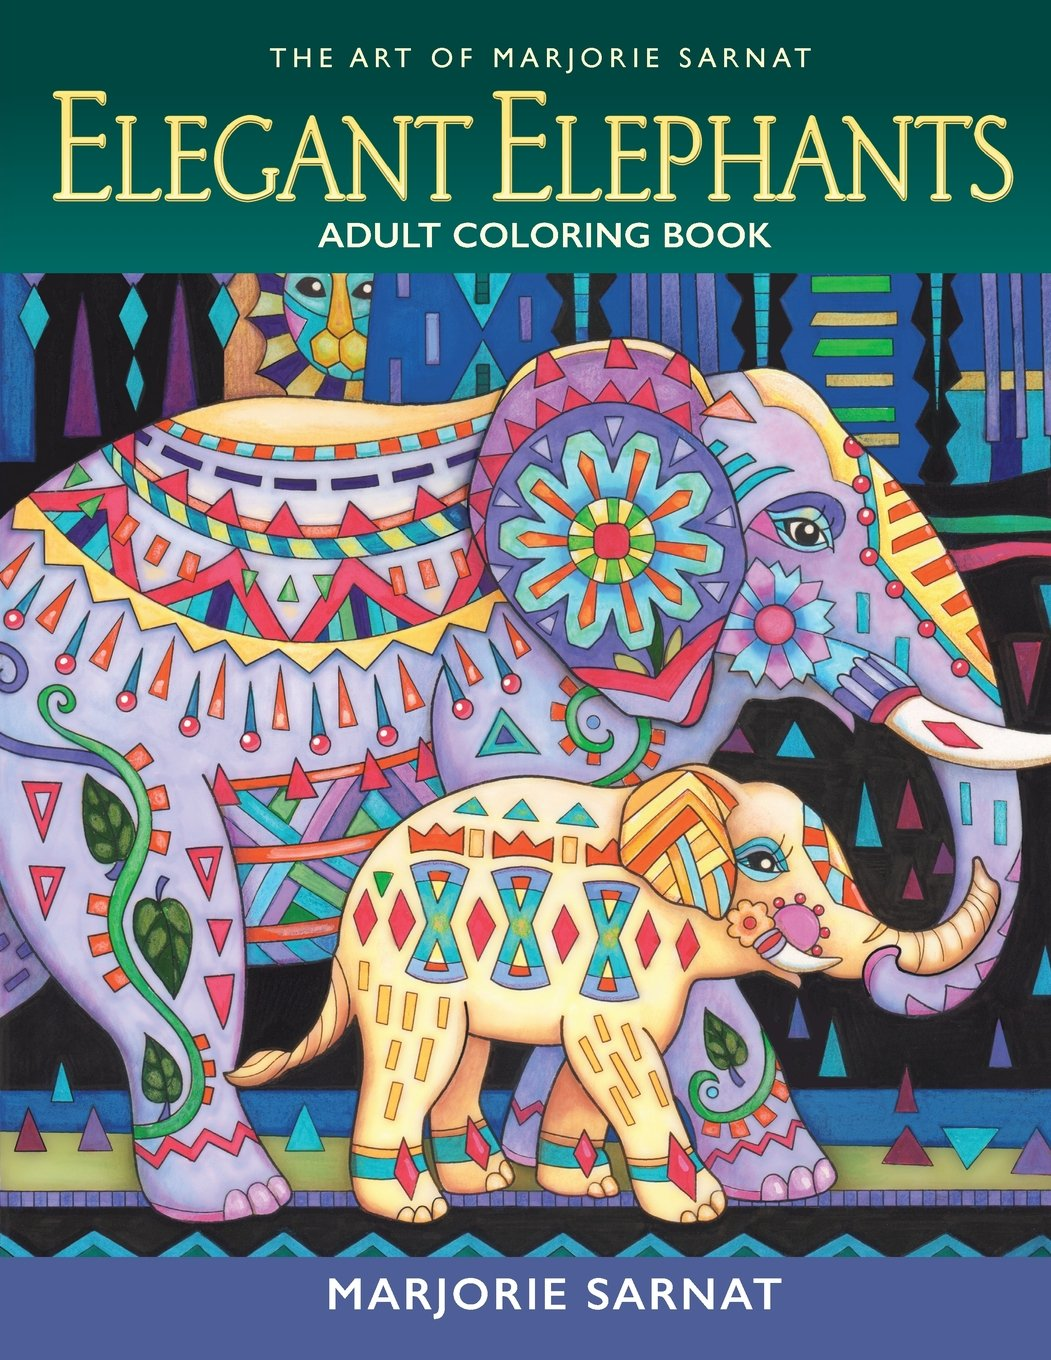 Amazon The Art Of Marjorie Sarnat Elegant Elephants Adult Coloring Book 9780989318983 Books